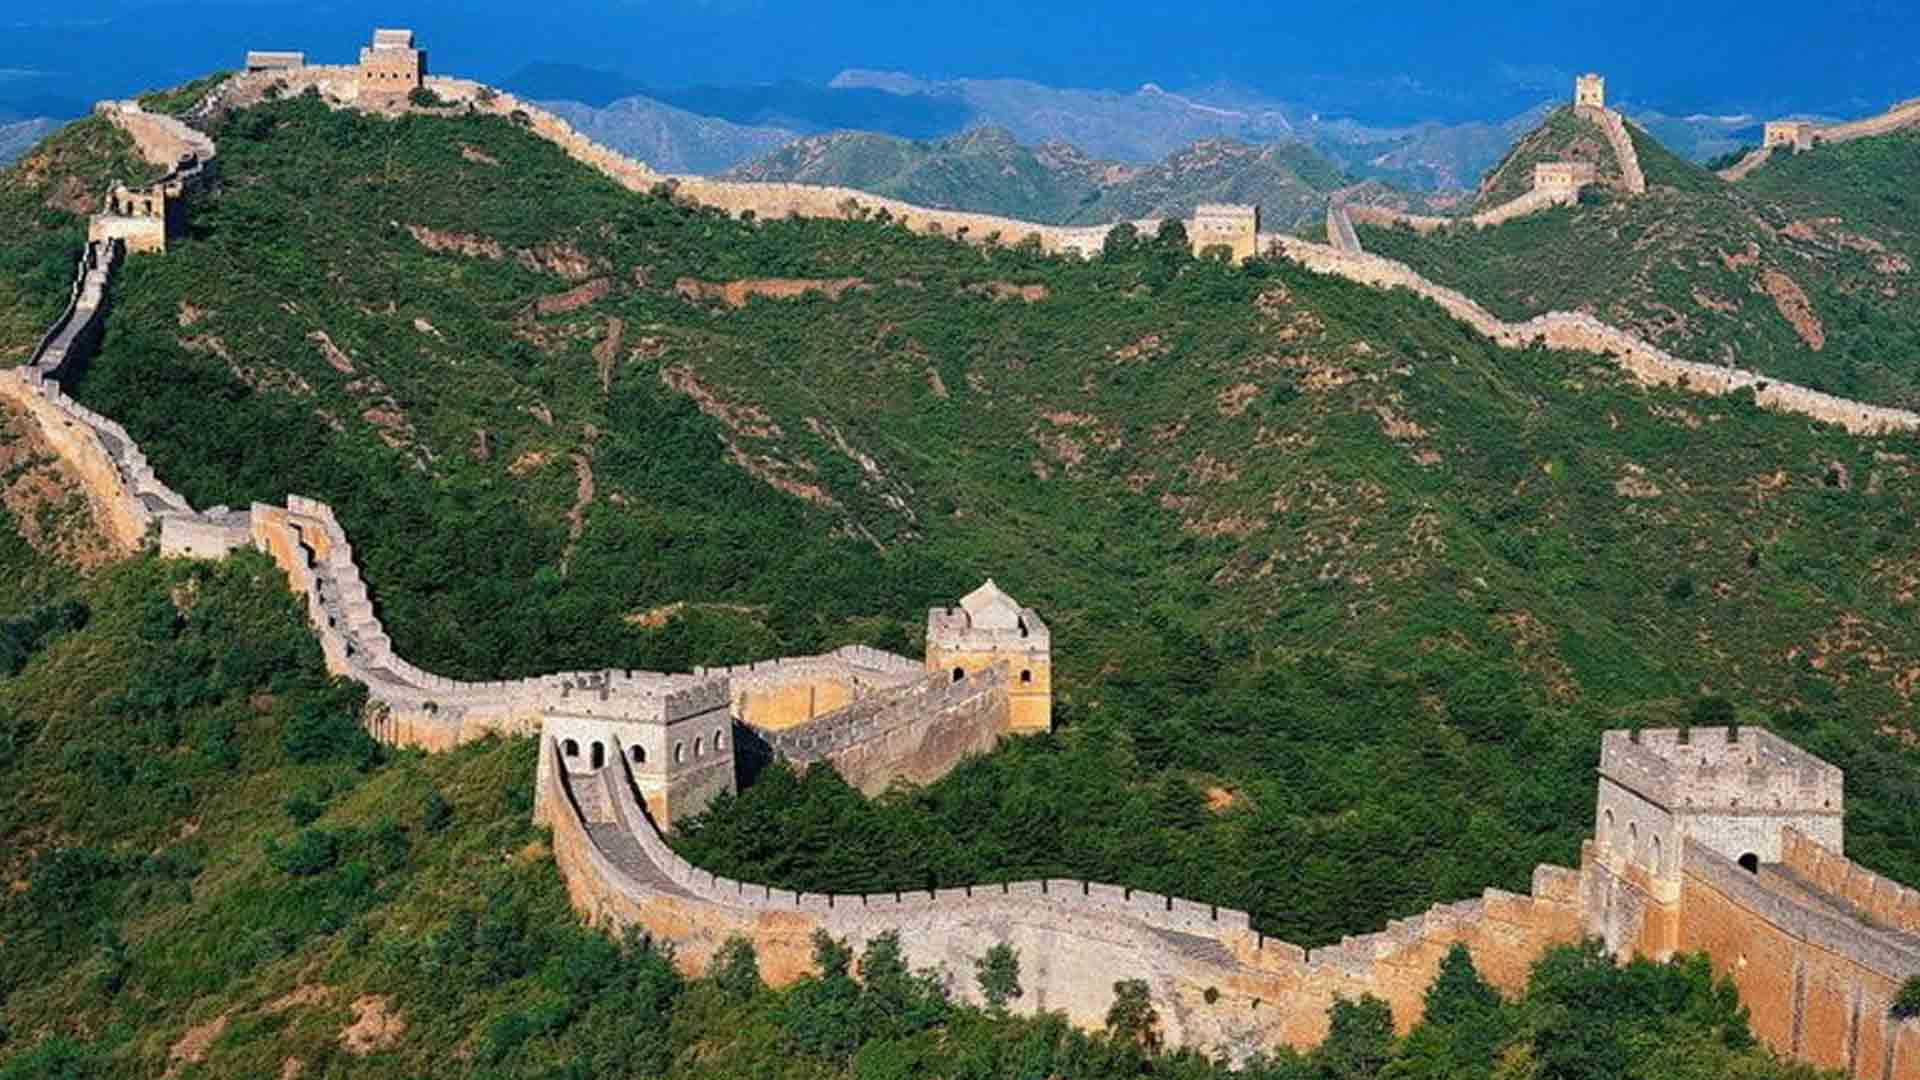 The Great Wall of China. Photo credits: www.foundtheworld.com